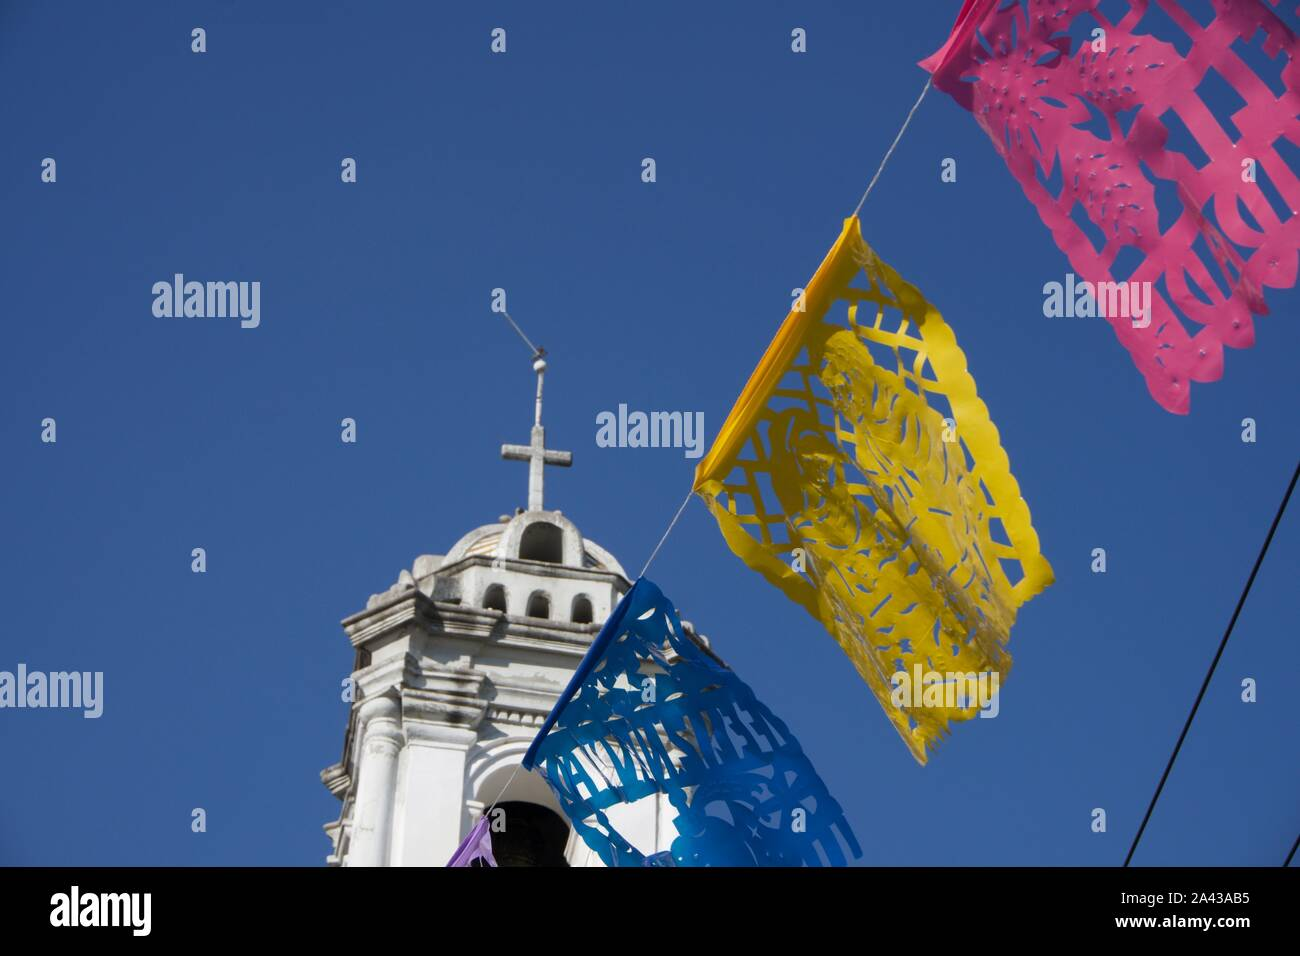 La iglesia de Santa Ana, Church of Santa Ana, barrio de Peralvillo, Cuauhtémoc. Papel picado (cut paper flags) and bell tower with cross. Mexico City. Stock Photo